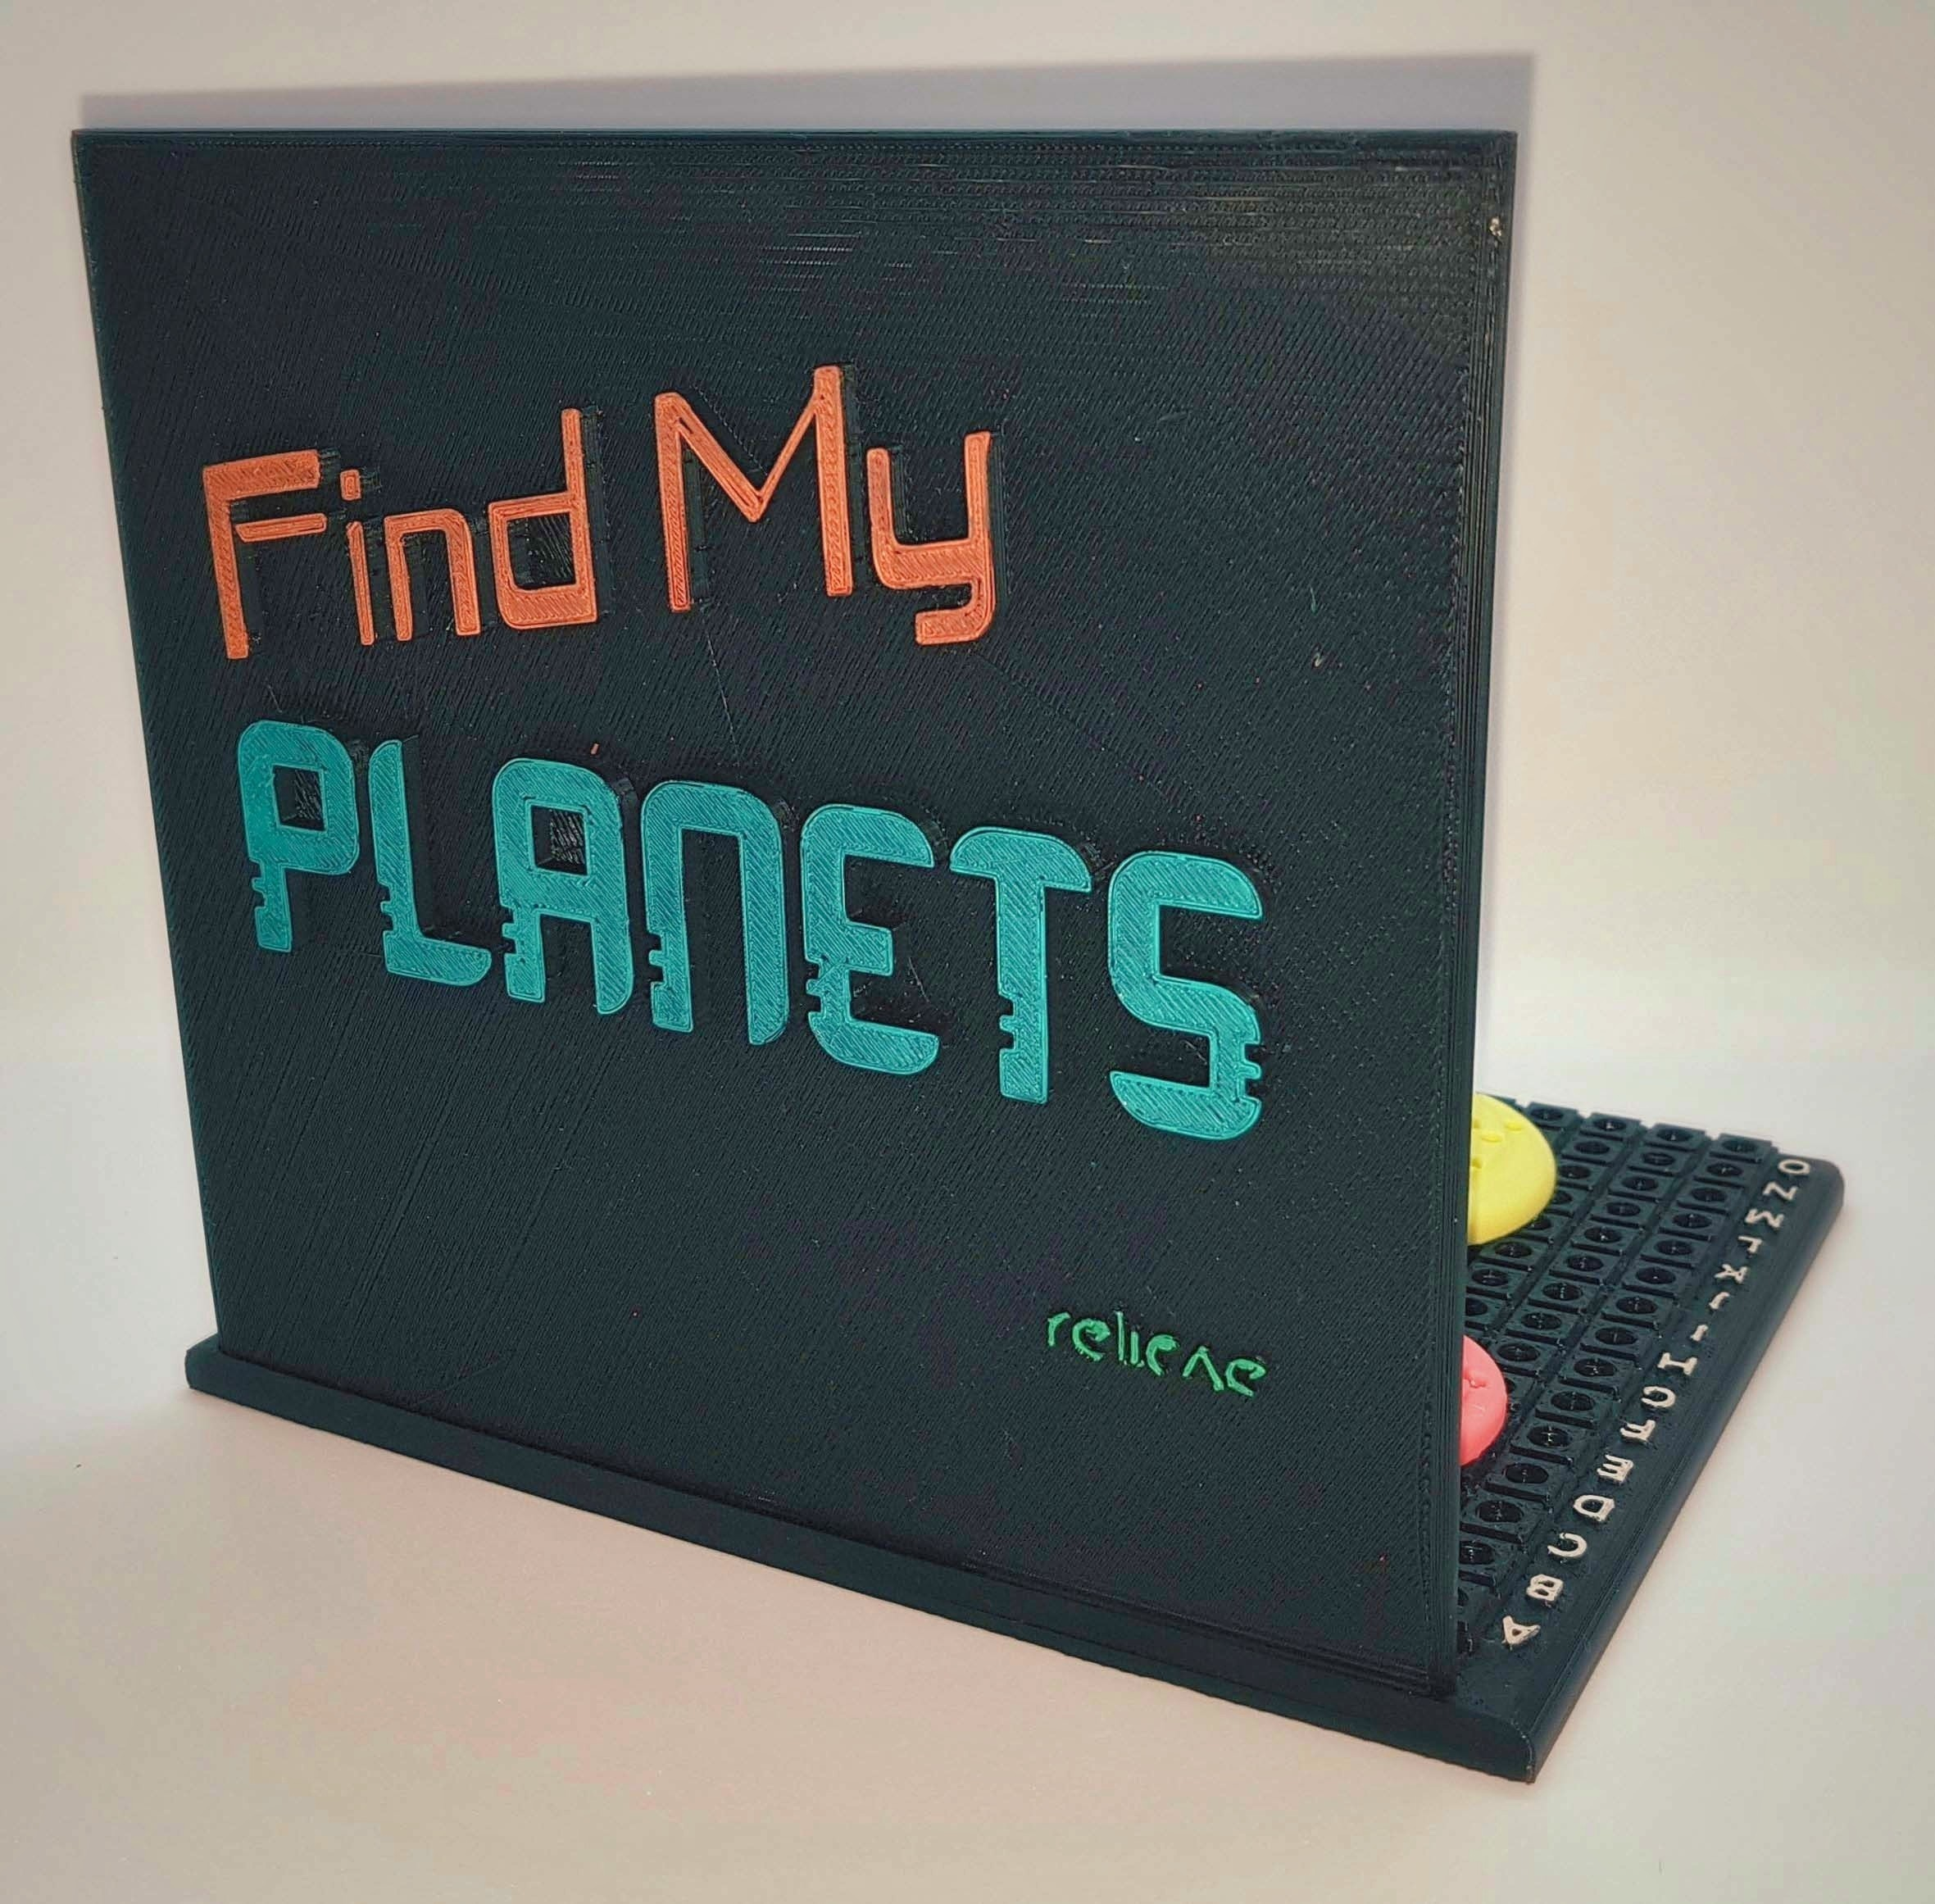 Find_My_Planets_2a_OK.jpg Download free STL file Find My Planets - Guessing Game (Battleship style) • 3D printer object, Relicae